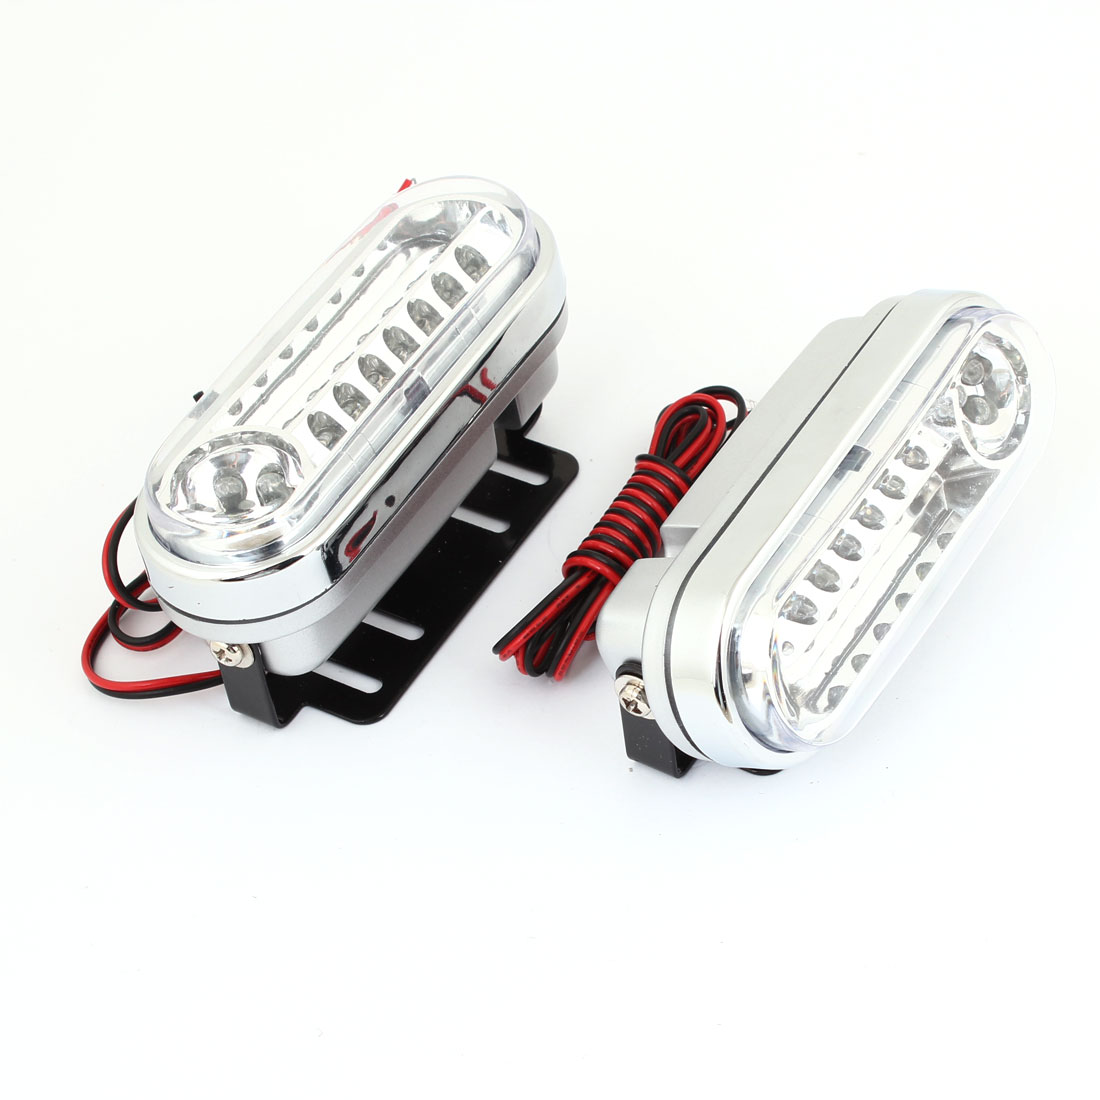 2pcs DC 12V Universal Warm White 21 LED DRL Daytime Running Light for Auto Car